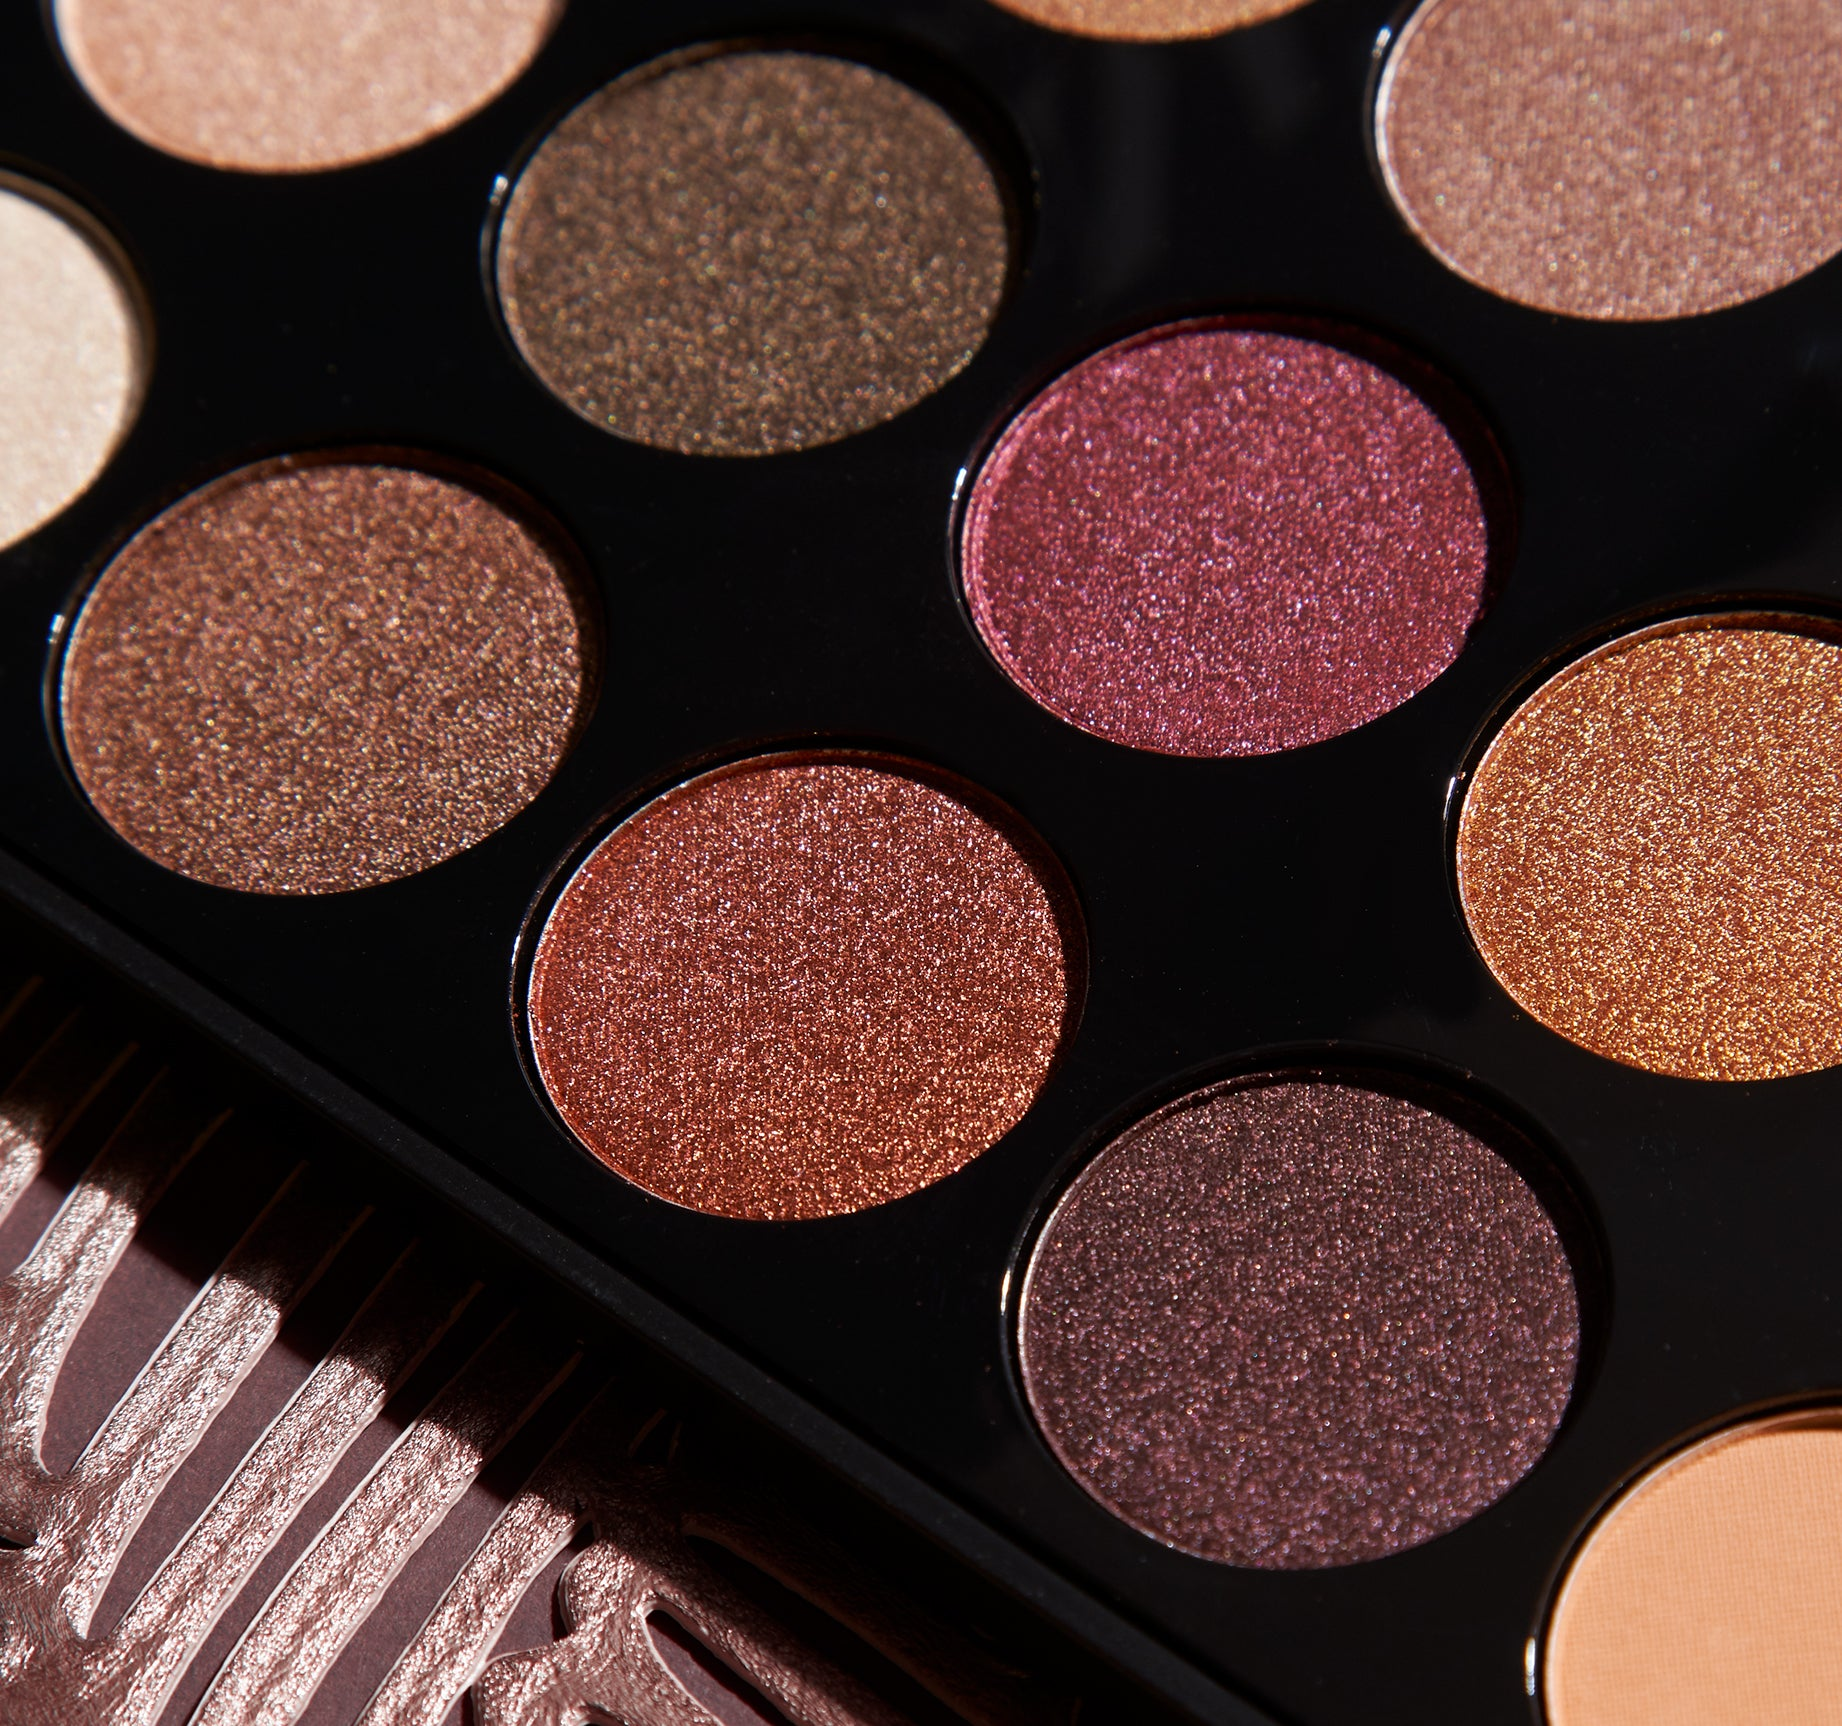 Glitter Eye Shadow Palette 12 Colors With Mirror 2 Brush Perfect Summer Matte Makeup Tool Eye Shadow Cosmetics For Make-up Beauty & Health